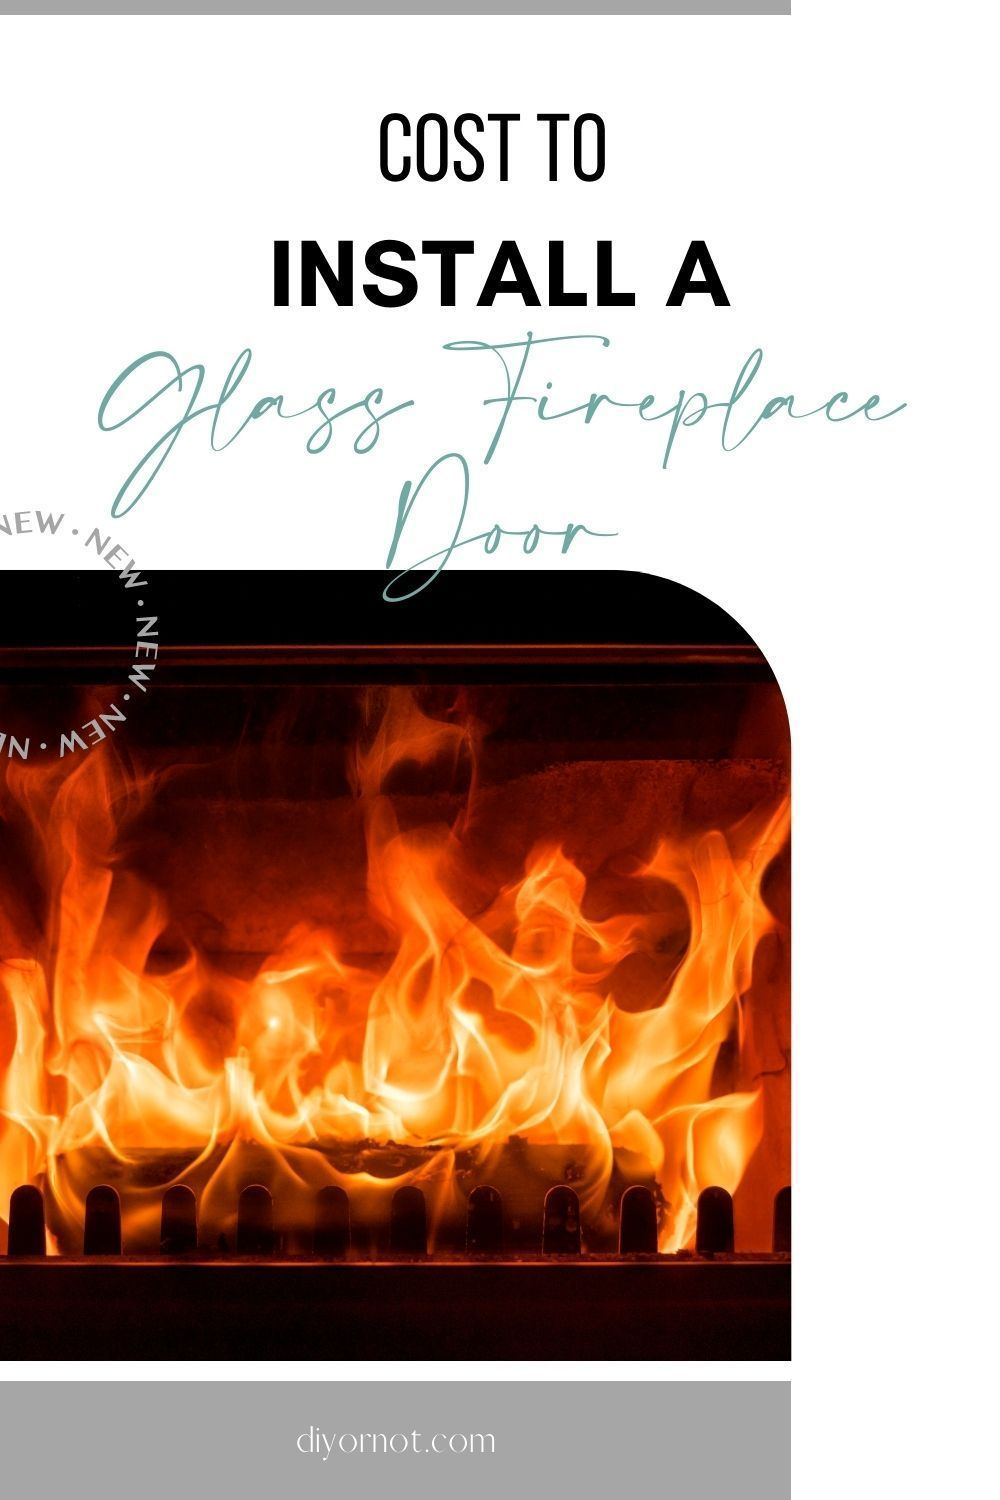 Cost To Install A Fireplace Glass Door 2020 In 2020 Fireplace Glass Doors Glass Fireplace Installing A Fireplace